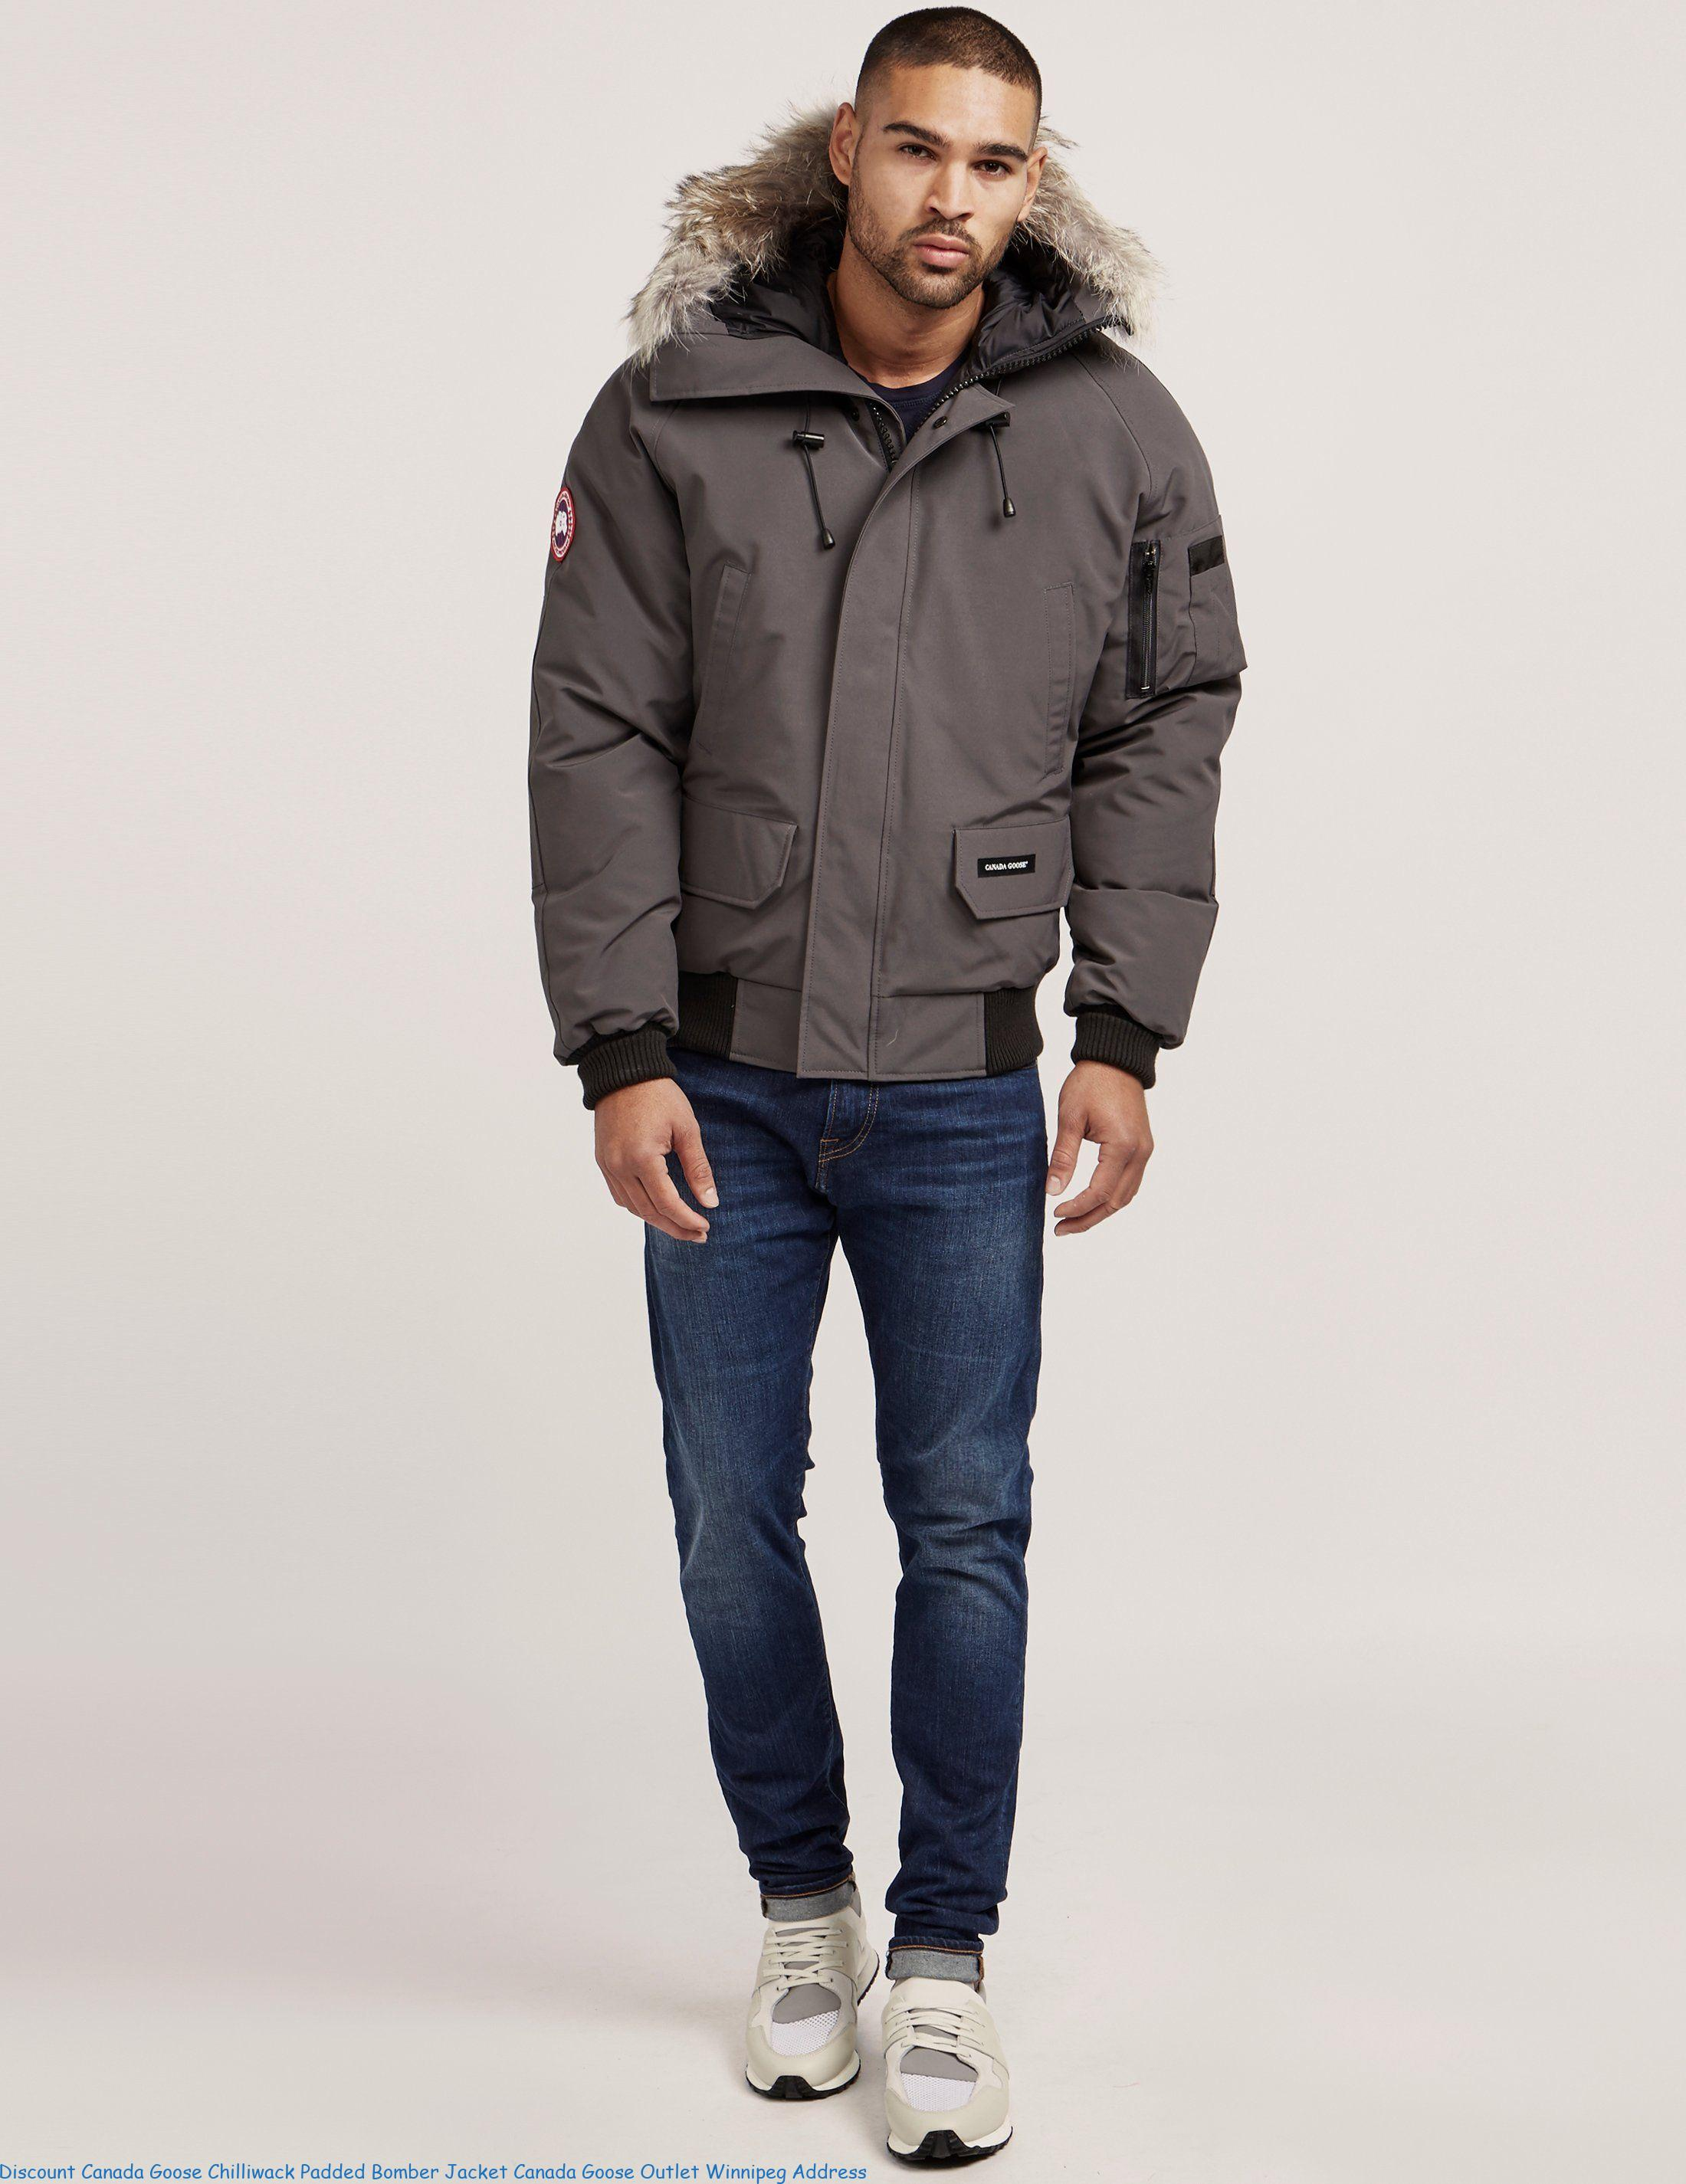 5d82e8afdba Discount Canada Goose Chilliwack Padded Bomber Jacket Canada Goose Outlet  Winnipeg Address – Canada Goose UK Outlet | Cheap Canada Goose Jackets,Coats ,Parka ...